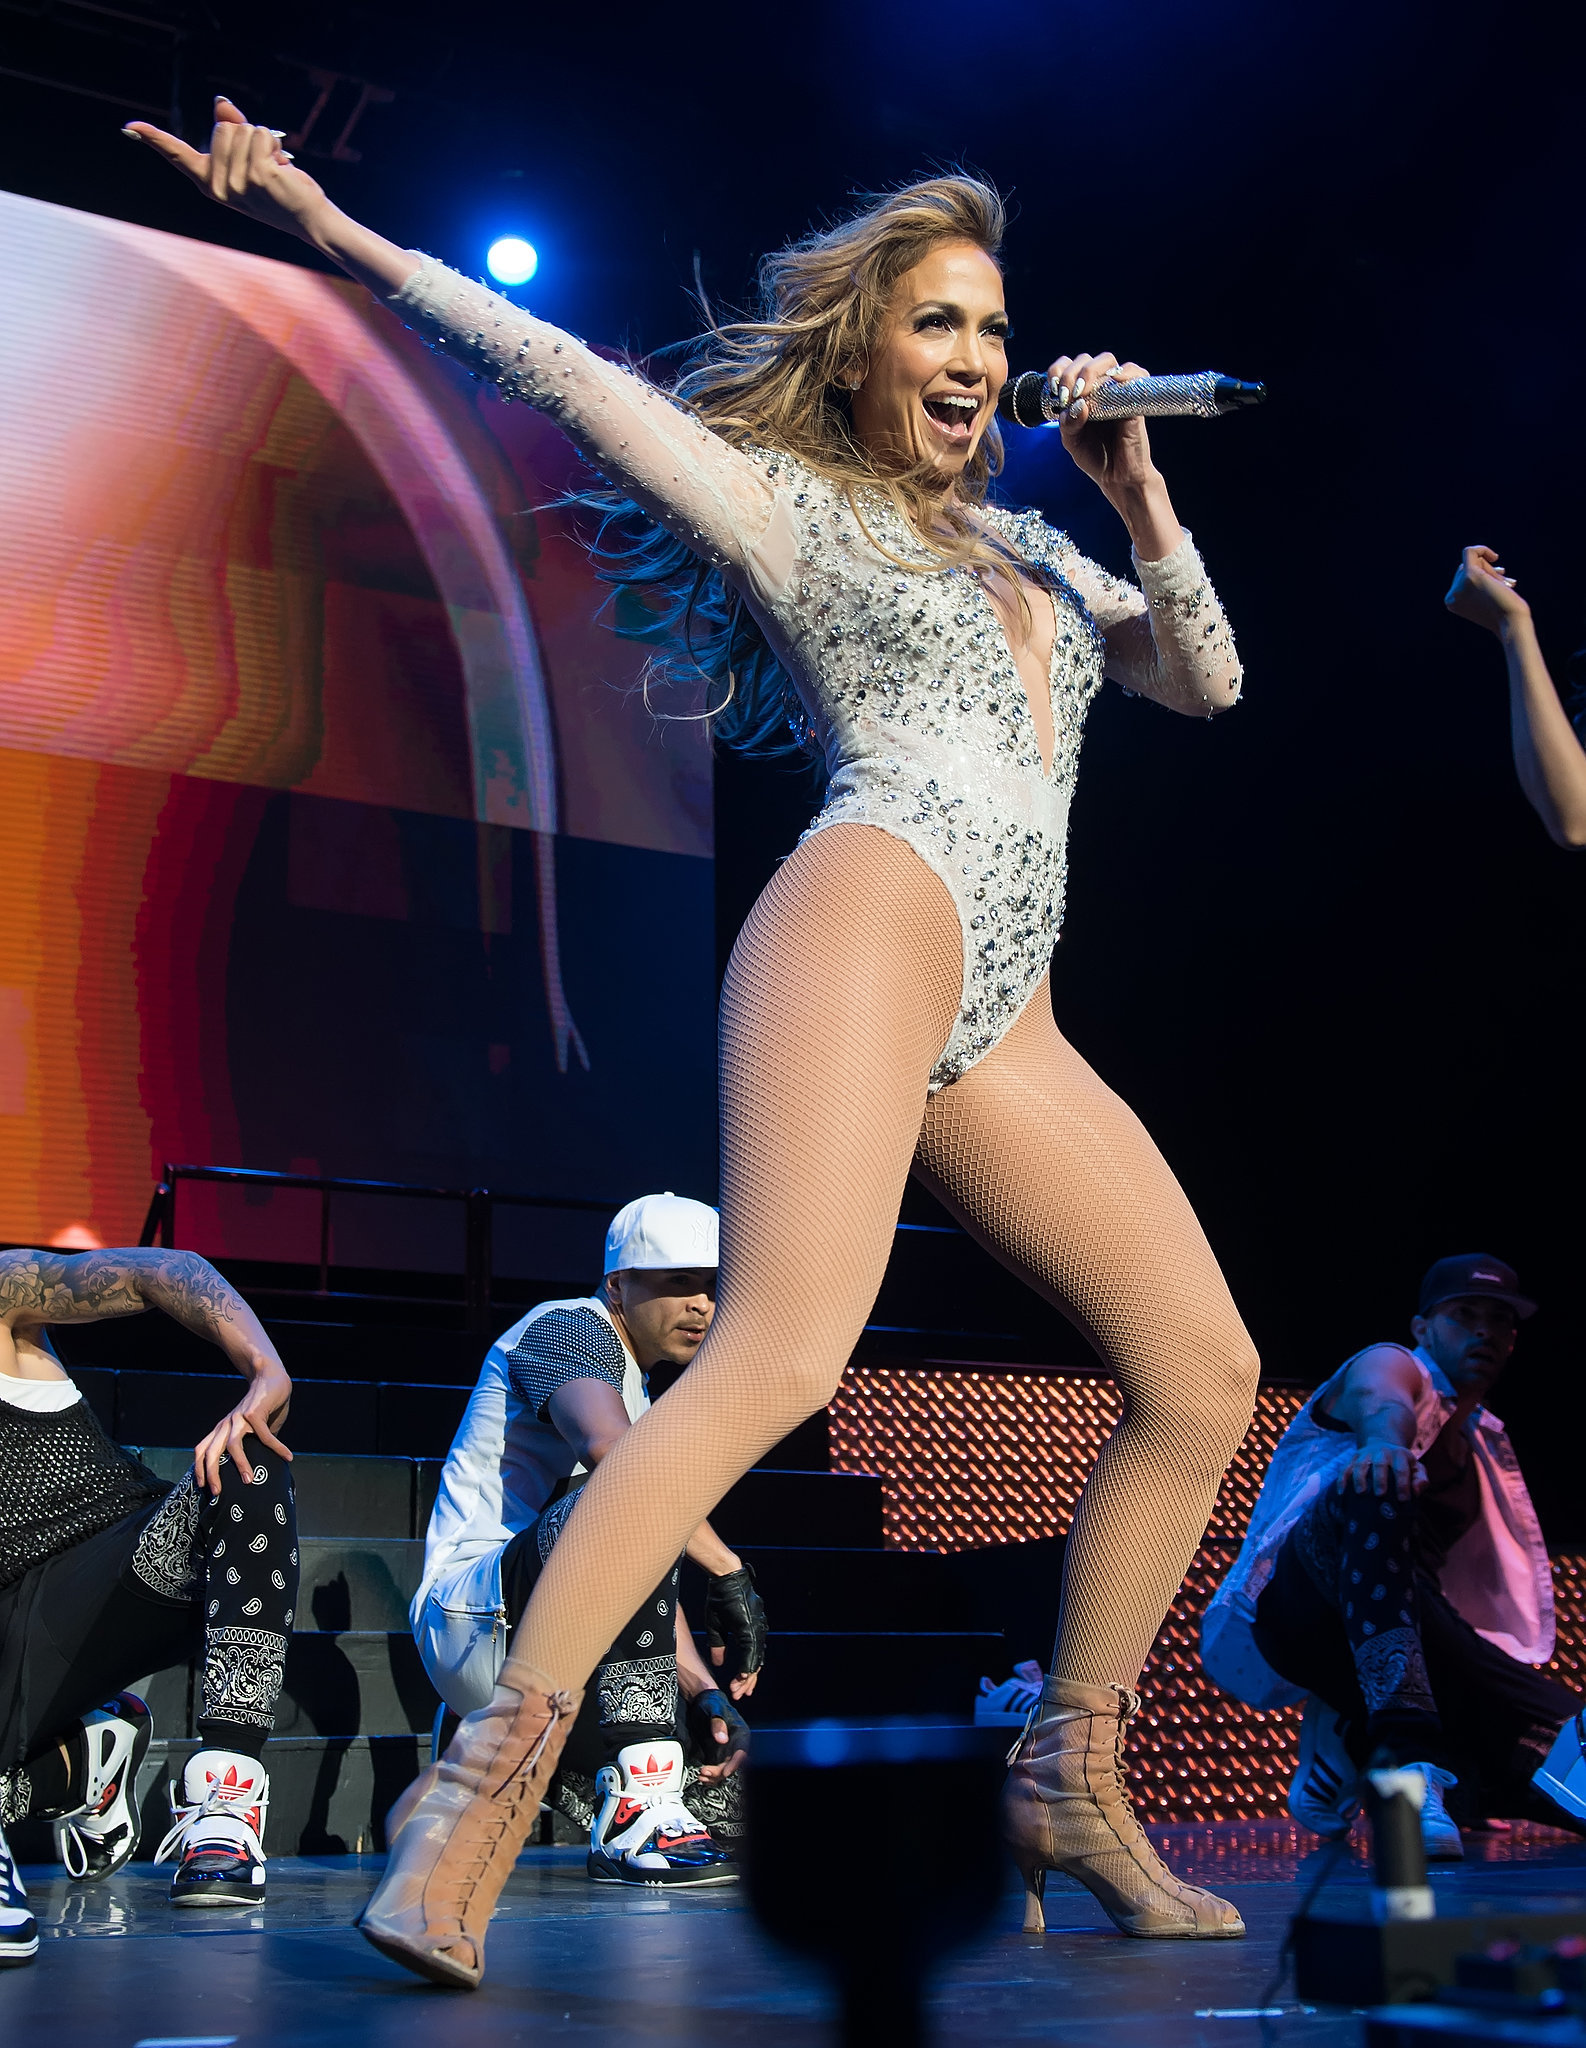 Wait, How Old Is Jennifer Lopez Again?